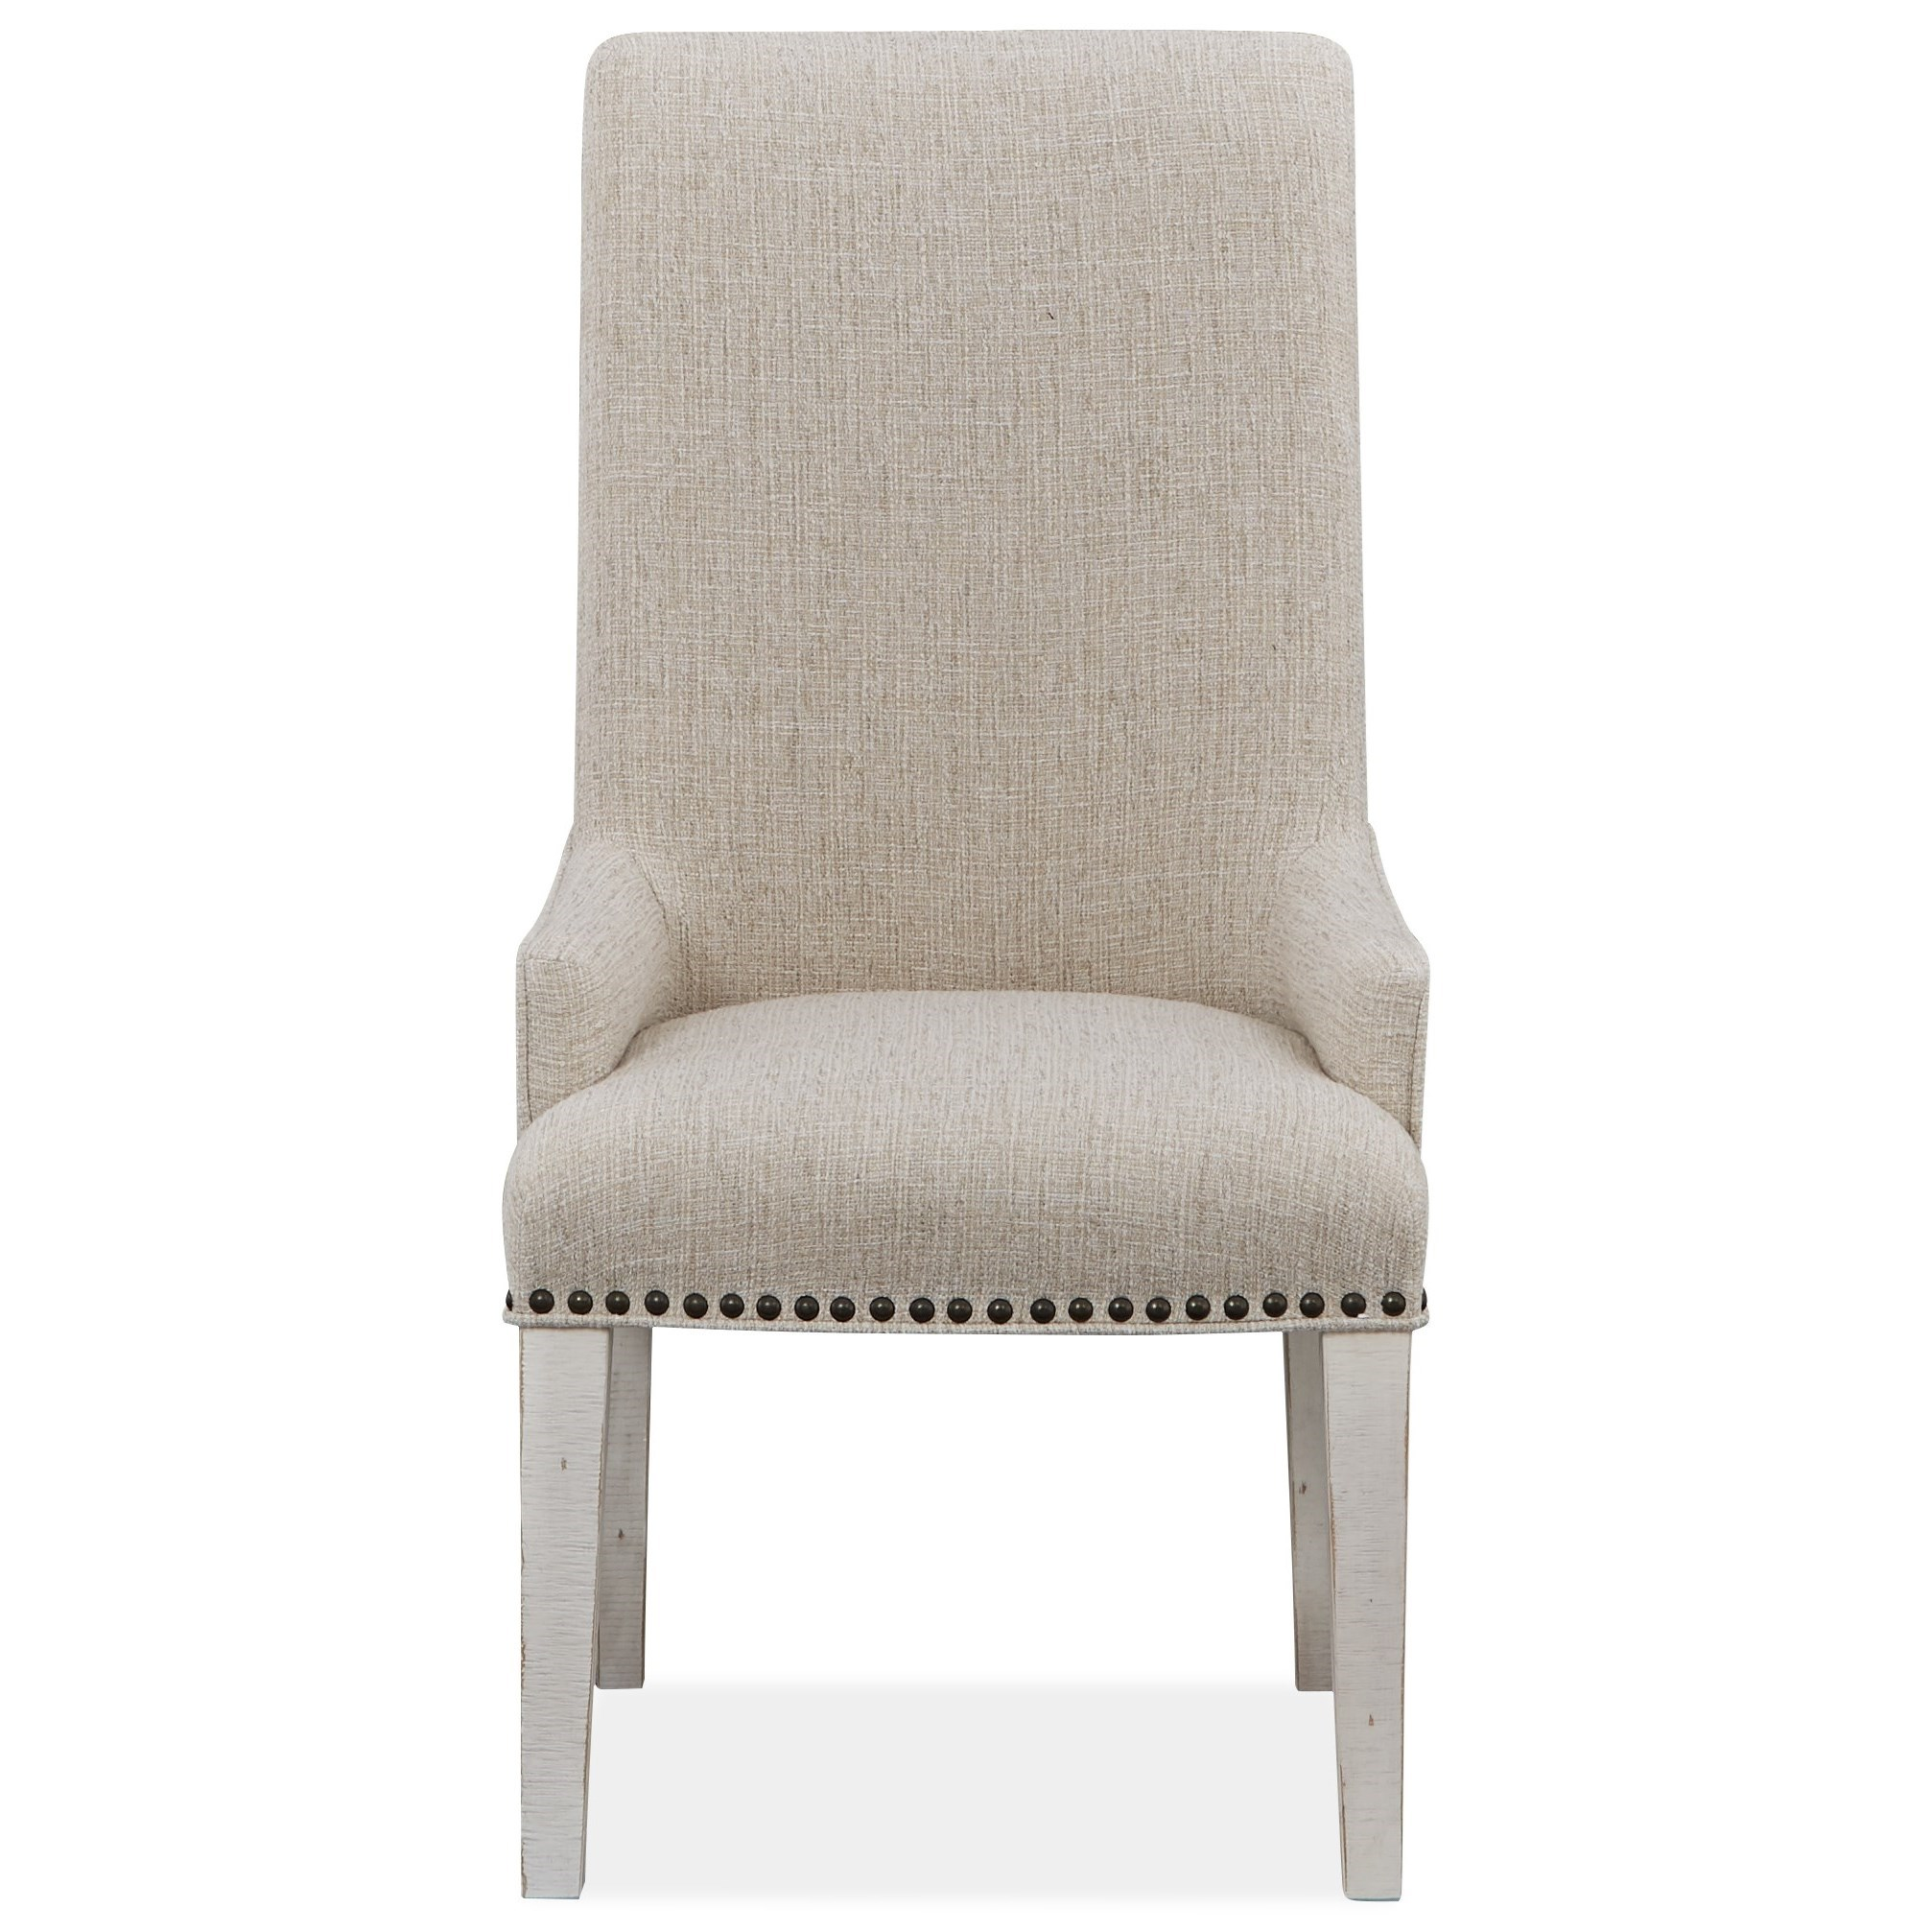 Bronwyn Upholstered Host Side Chair by Magnussen Home at Stoney Creek Furniture